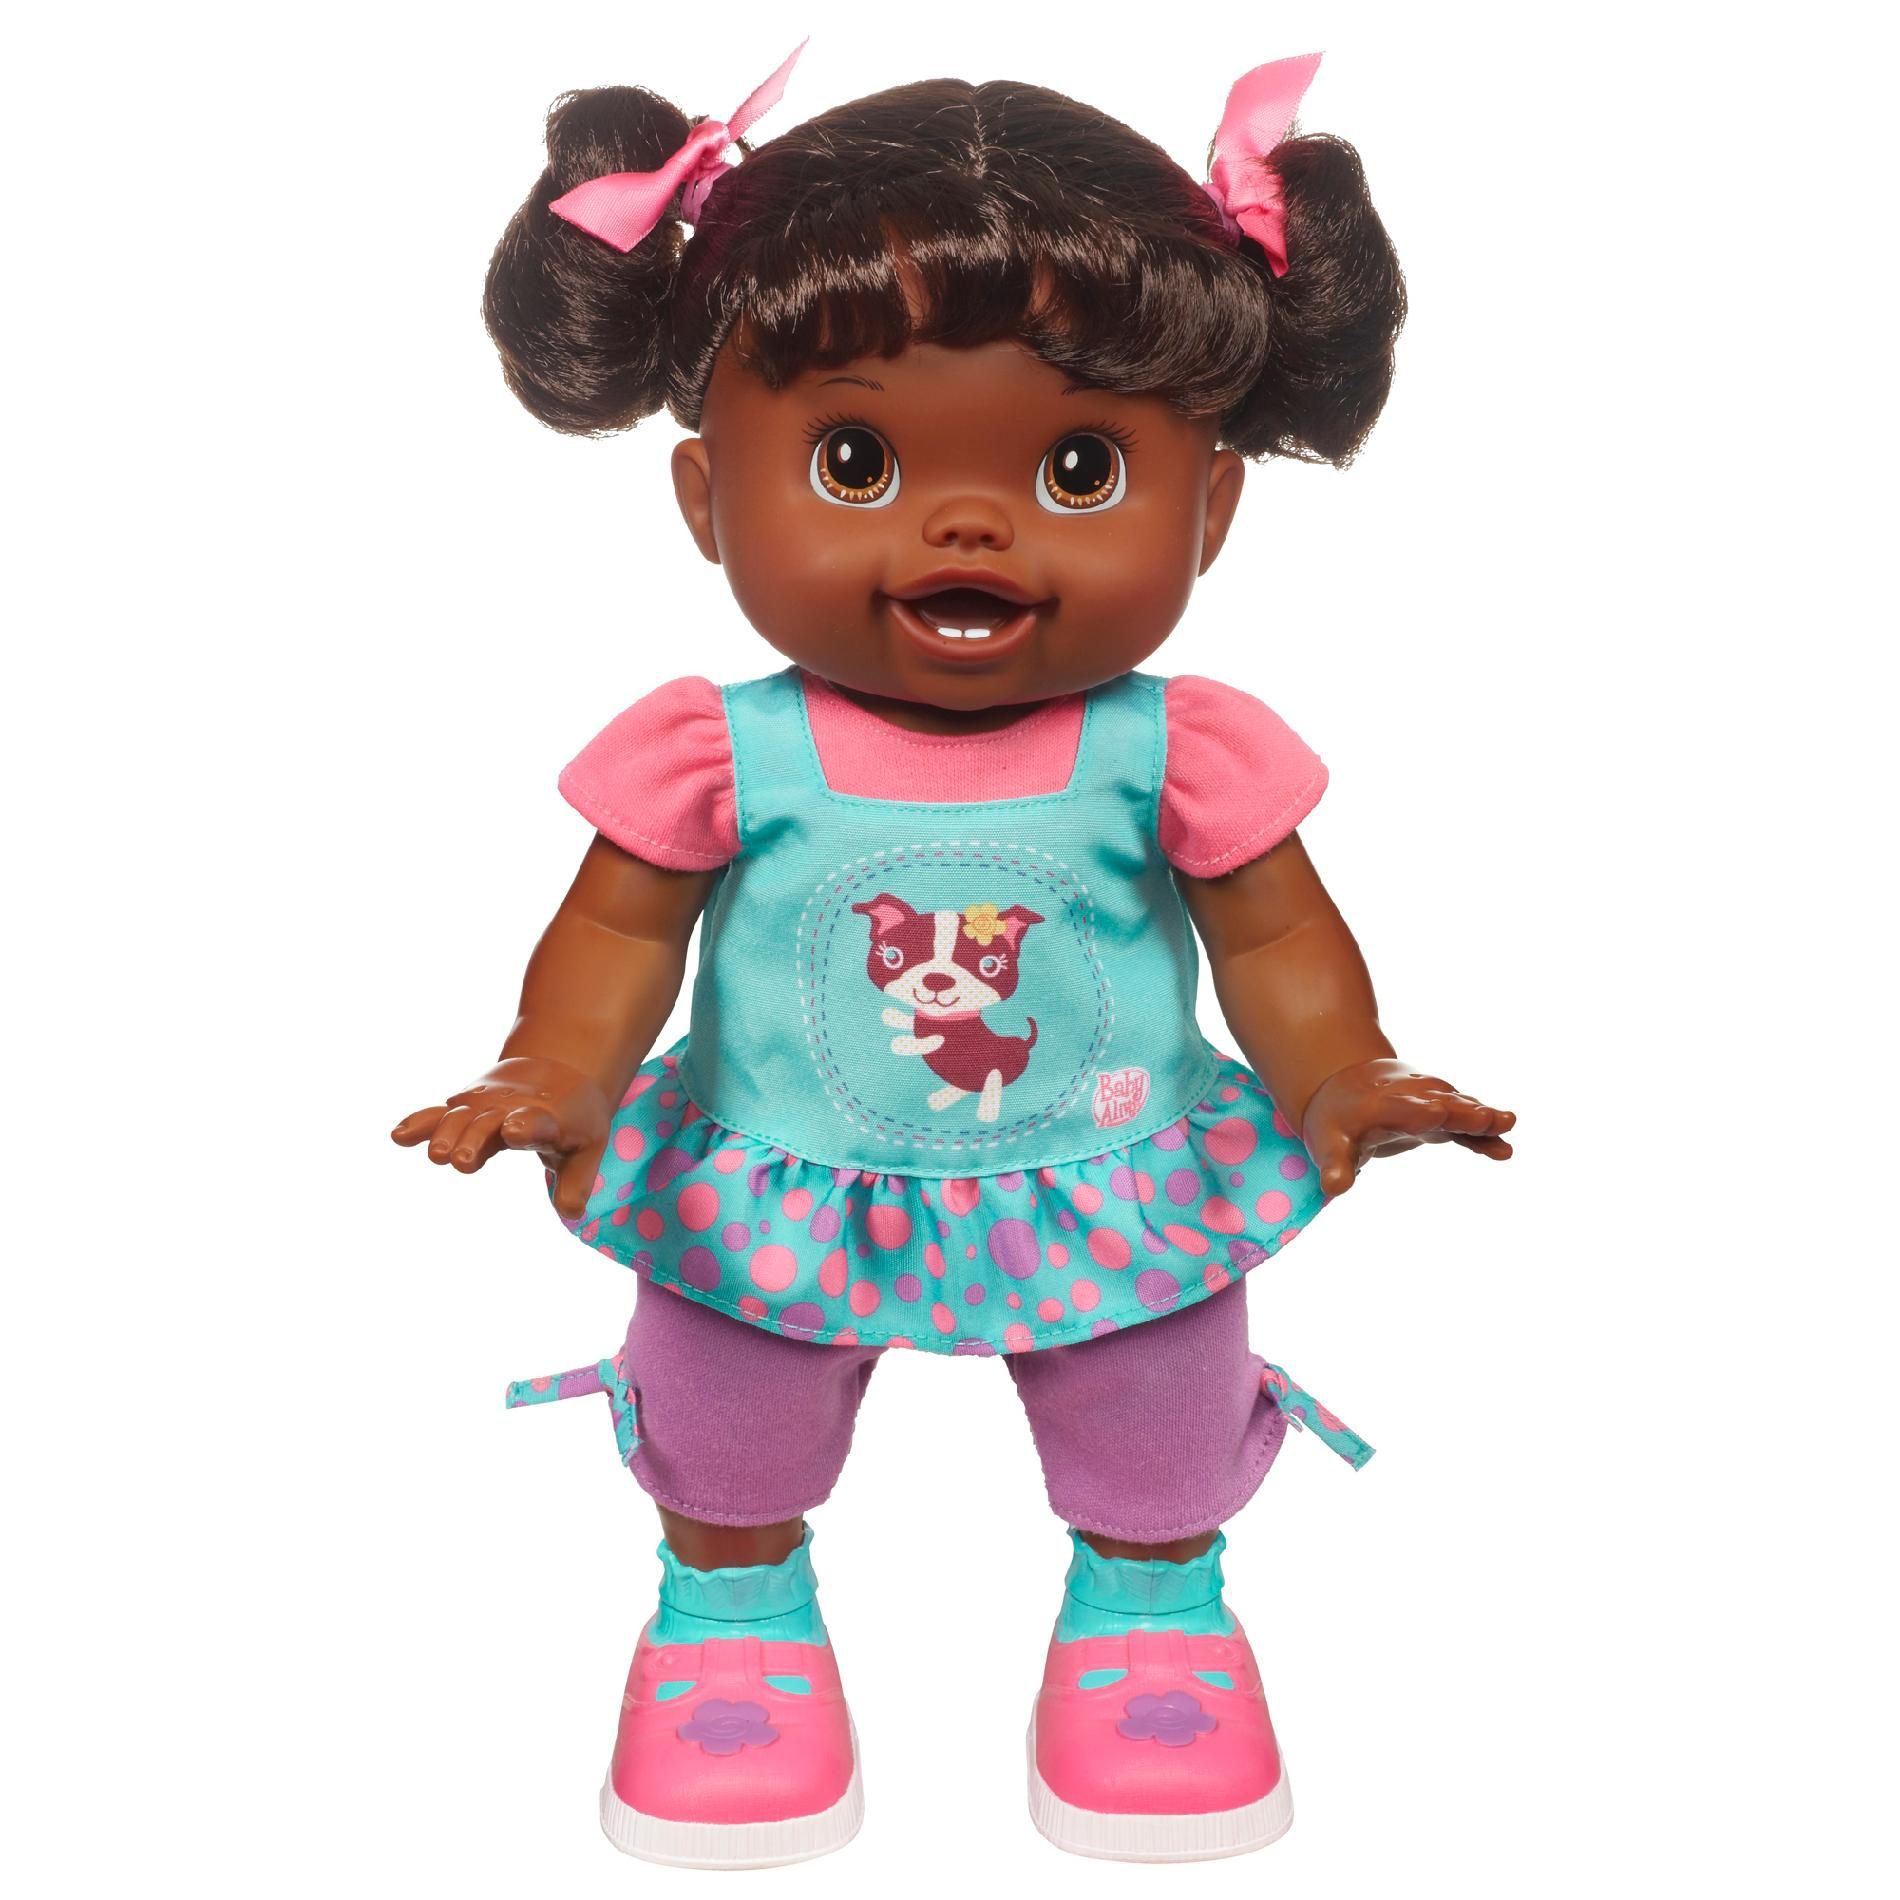 Baby Alive Baby Wanna Walk Doll